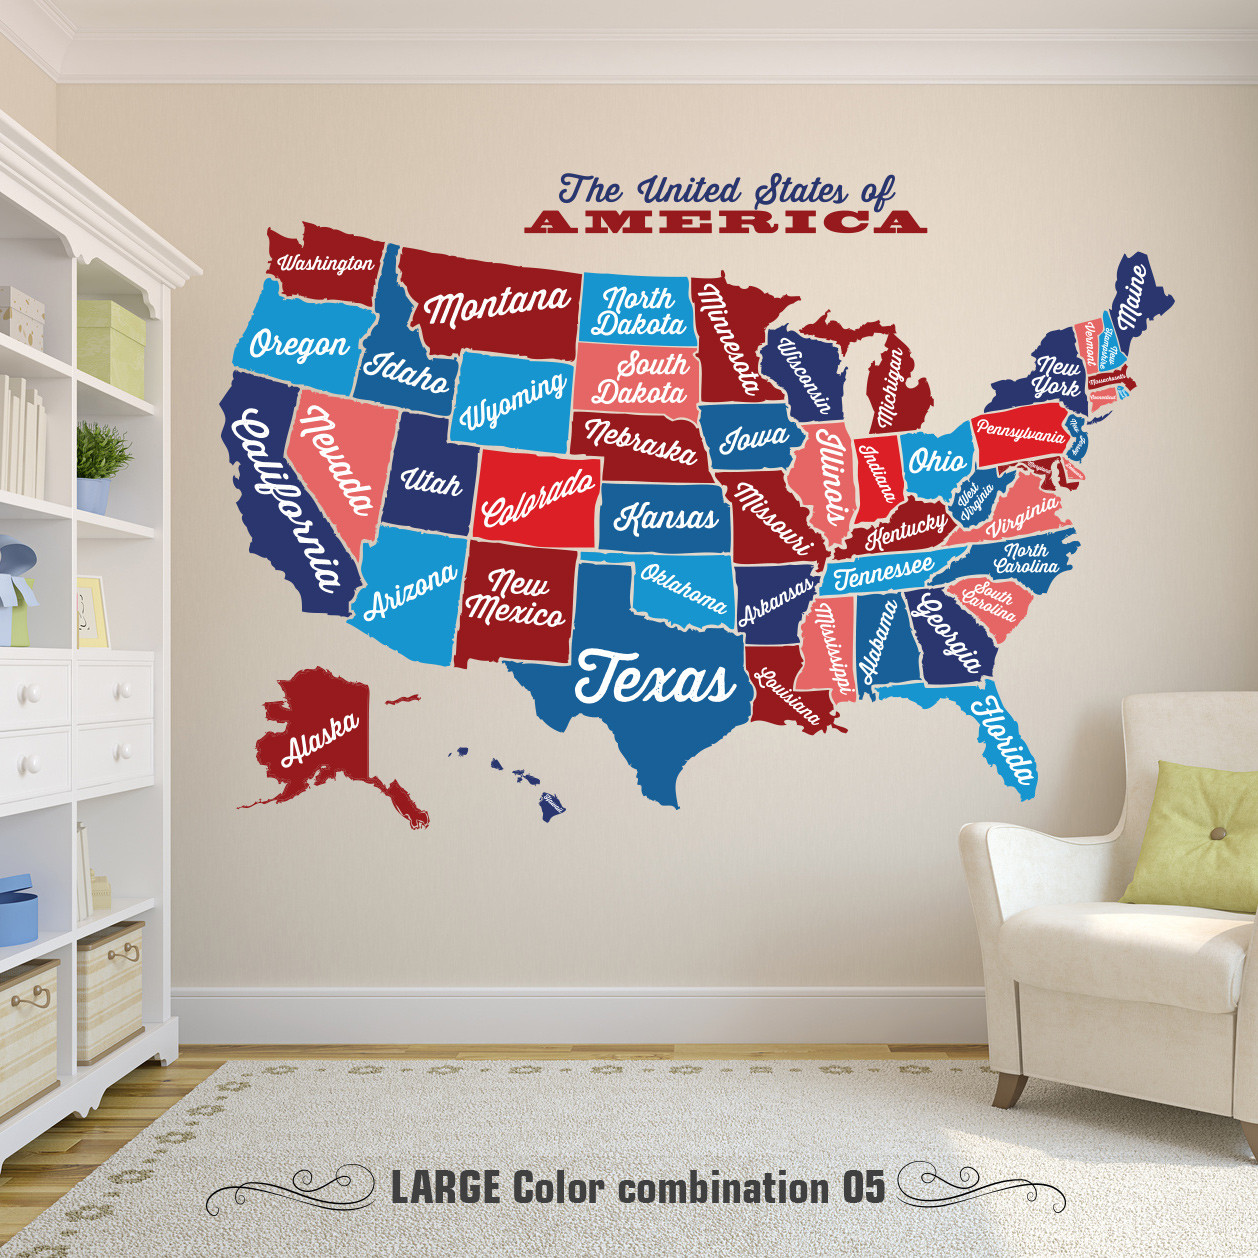 united states map decal usa map sticker state map wall mural  -  usa wall decal map vintage retro image